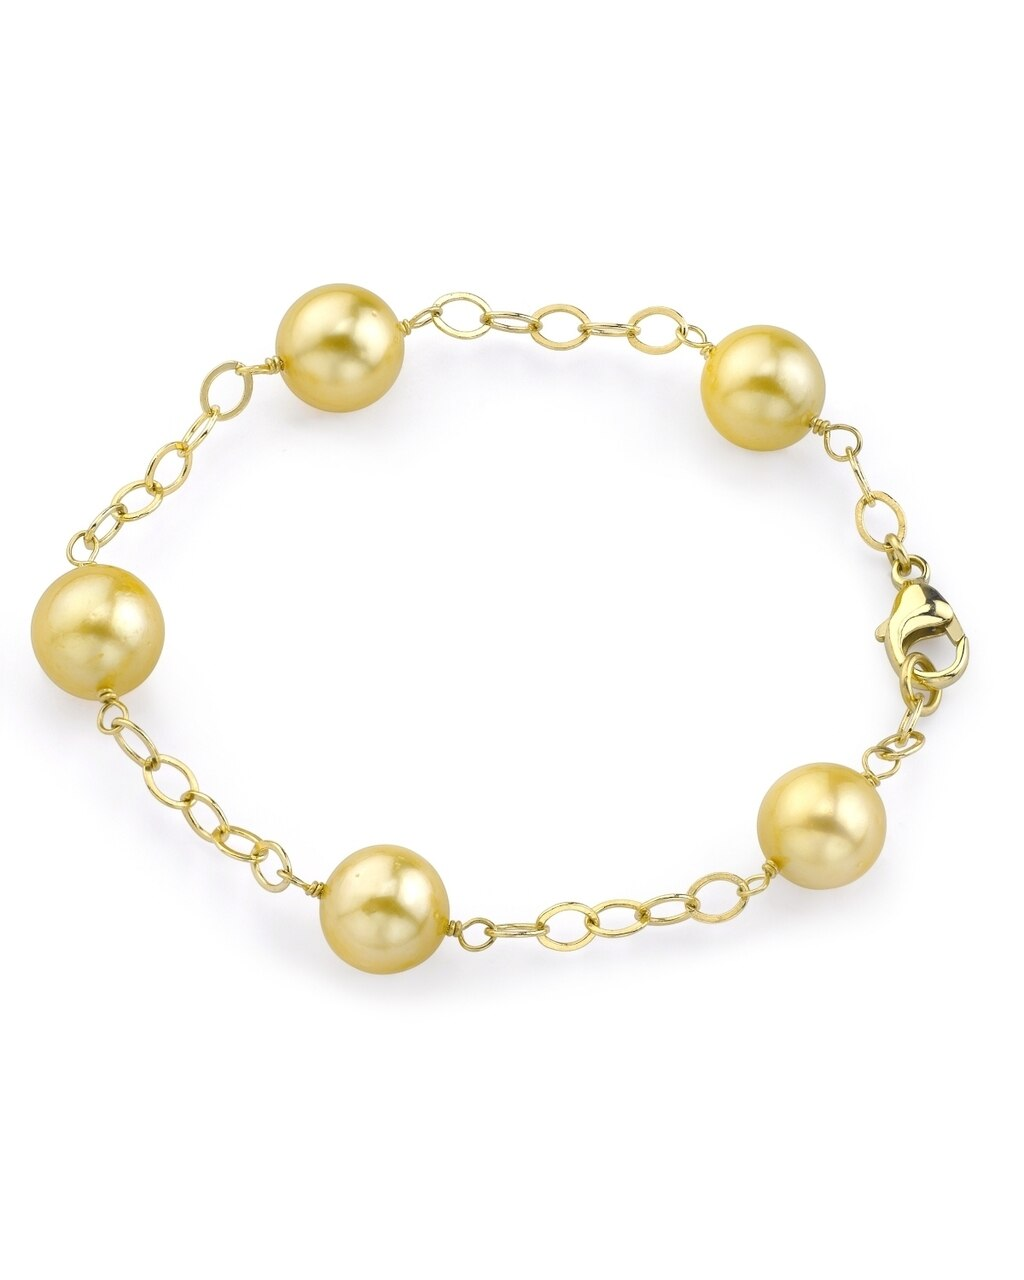 This exquisite bracelet features 9.0-10.0mm Golden South Sea pearls, handpicked for their radiant luster